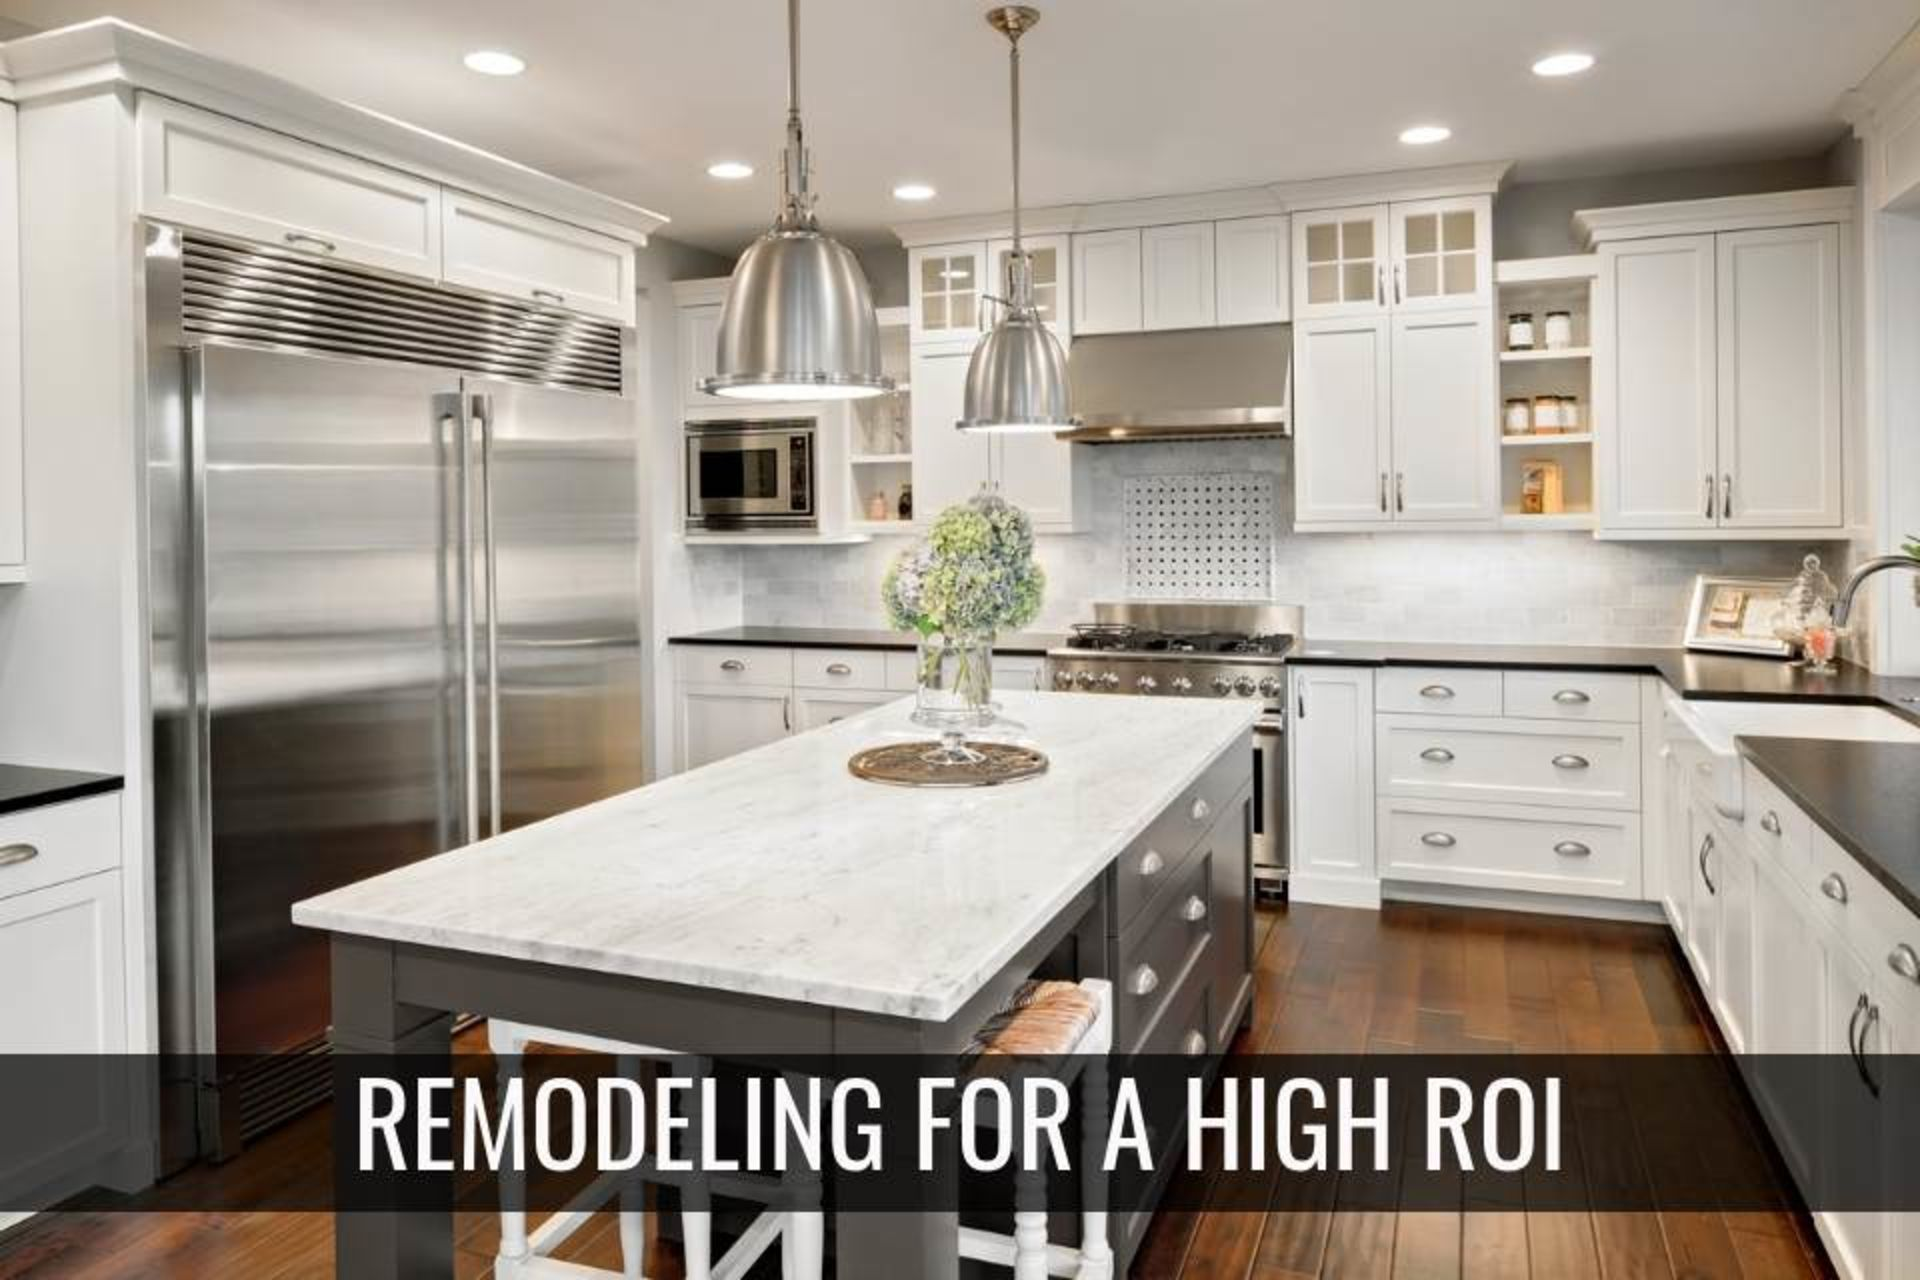 Remodeling for a High ROI